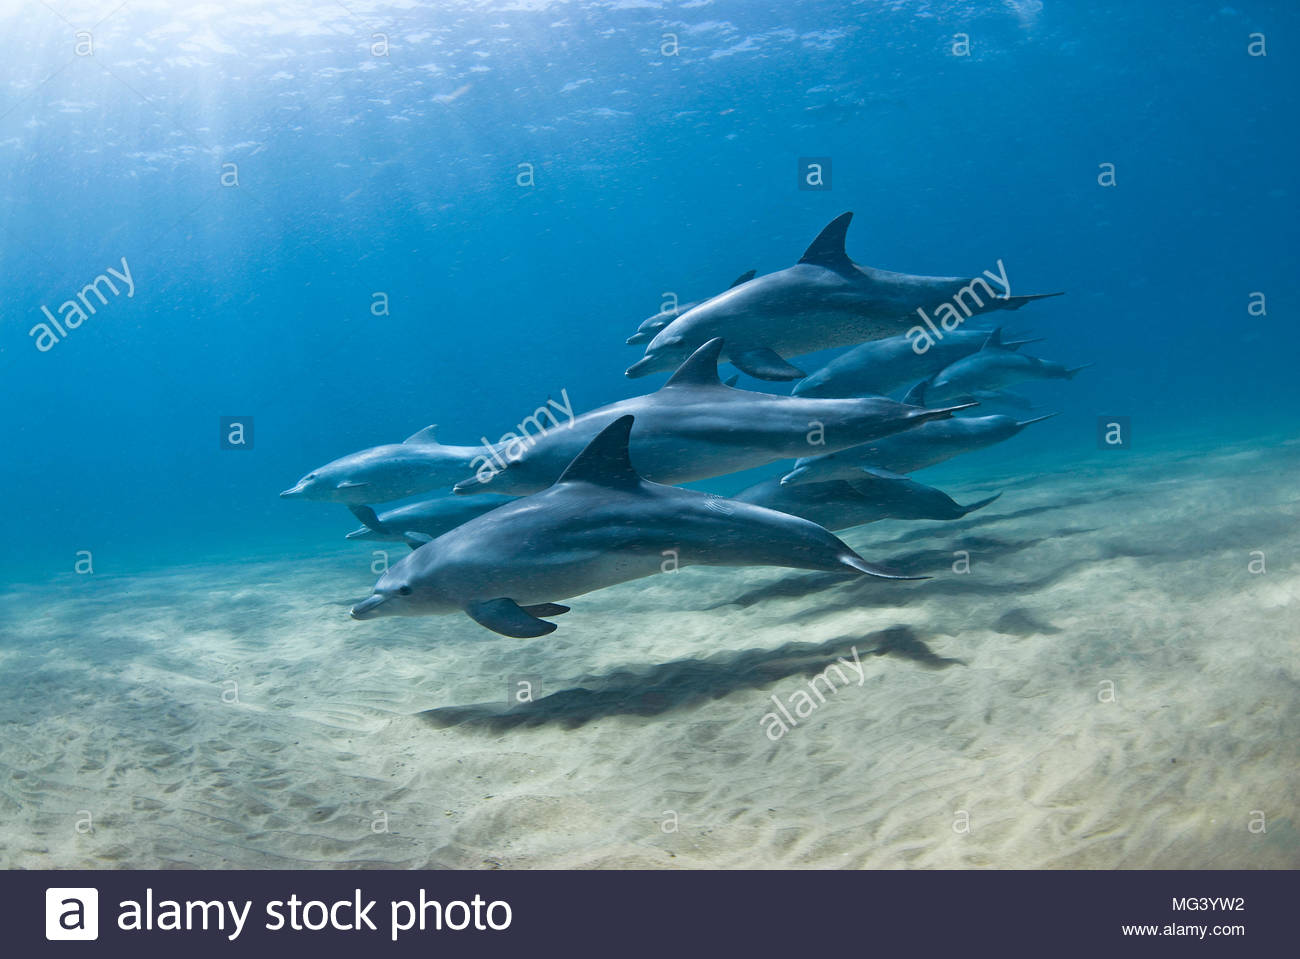 Grosser Tuemmler (Tursiops truncatus), Sodwana Bay, Suedafrika | Bottlenose dolphin (Tursiops truncatus), pod of dolphins, Sodwana Bay, South Africa - Stock Image